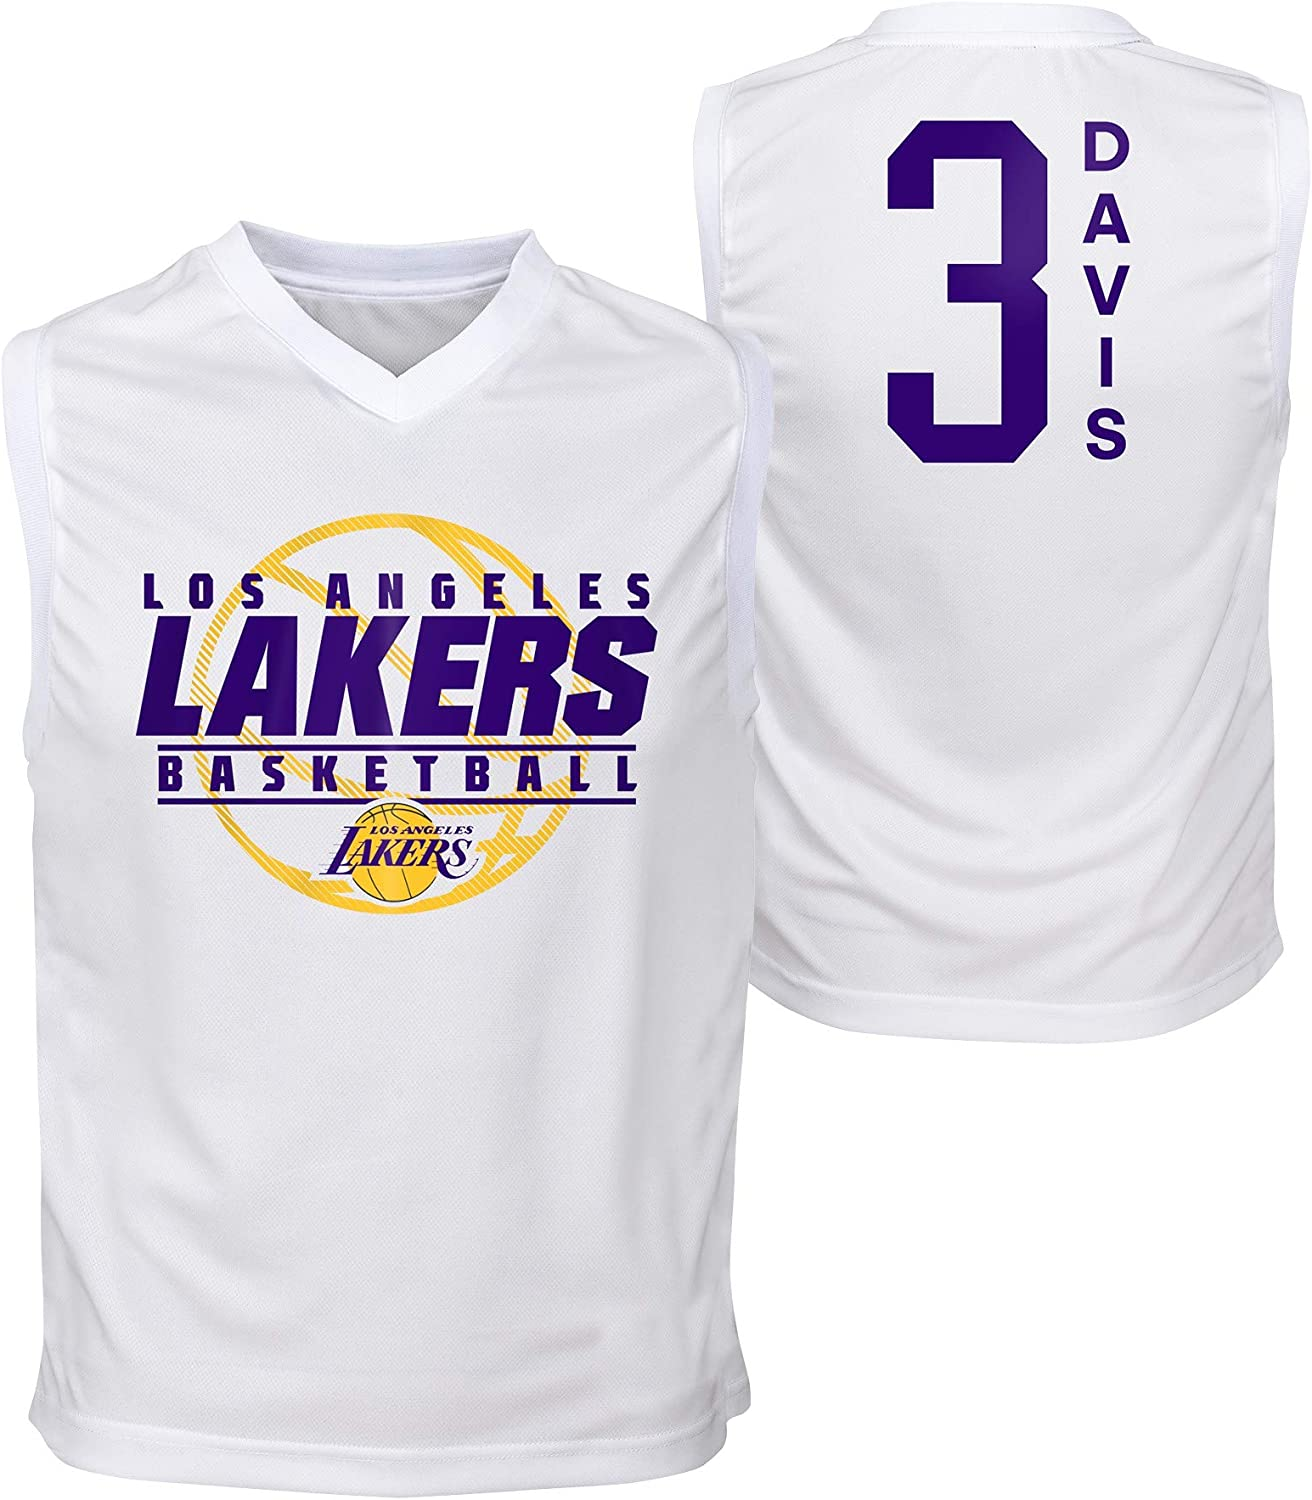 Outerstuff NBA Youth Boys (8-20) Los Angeles Lakers Anthony Davis Fast Lane Sleeveless Top